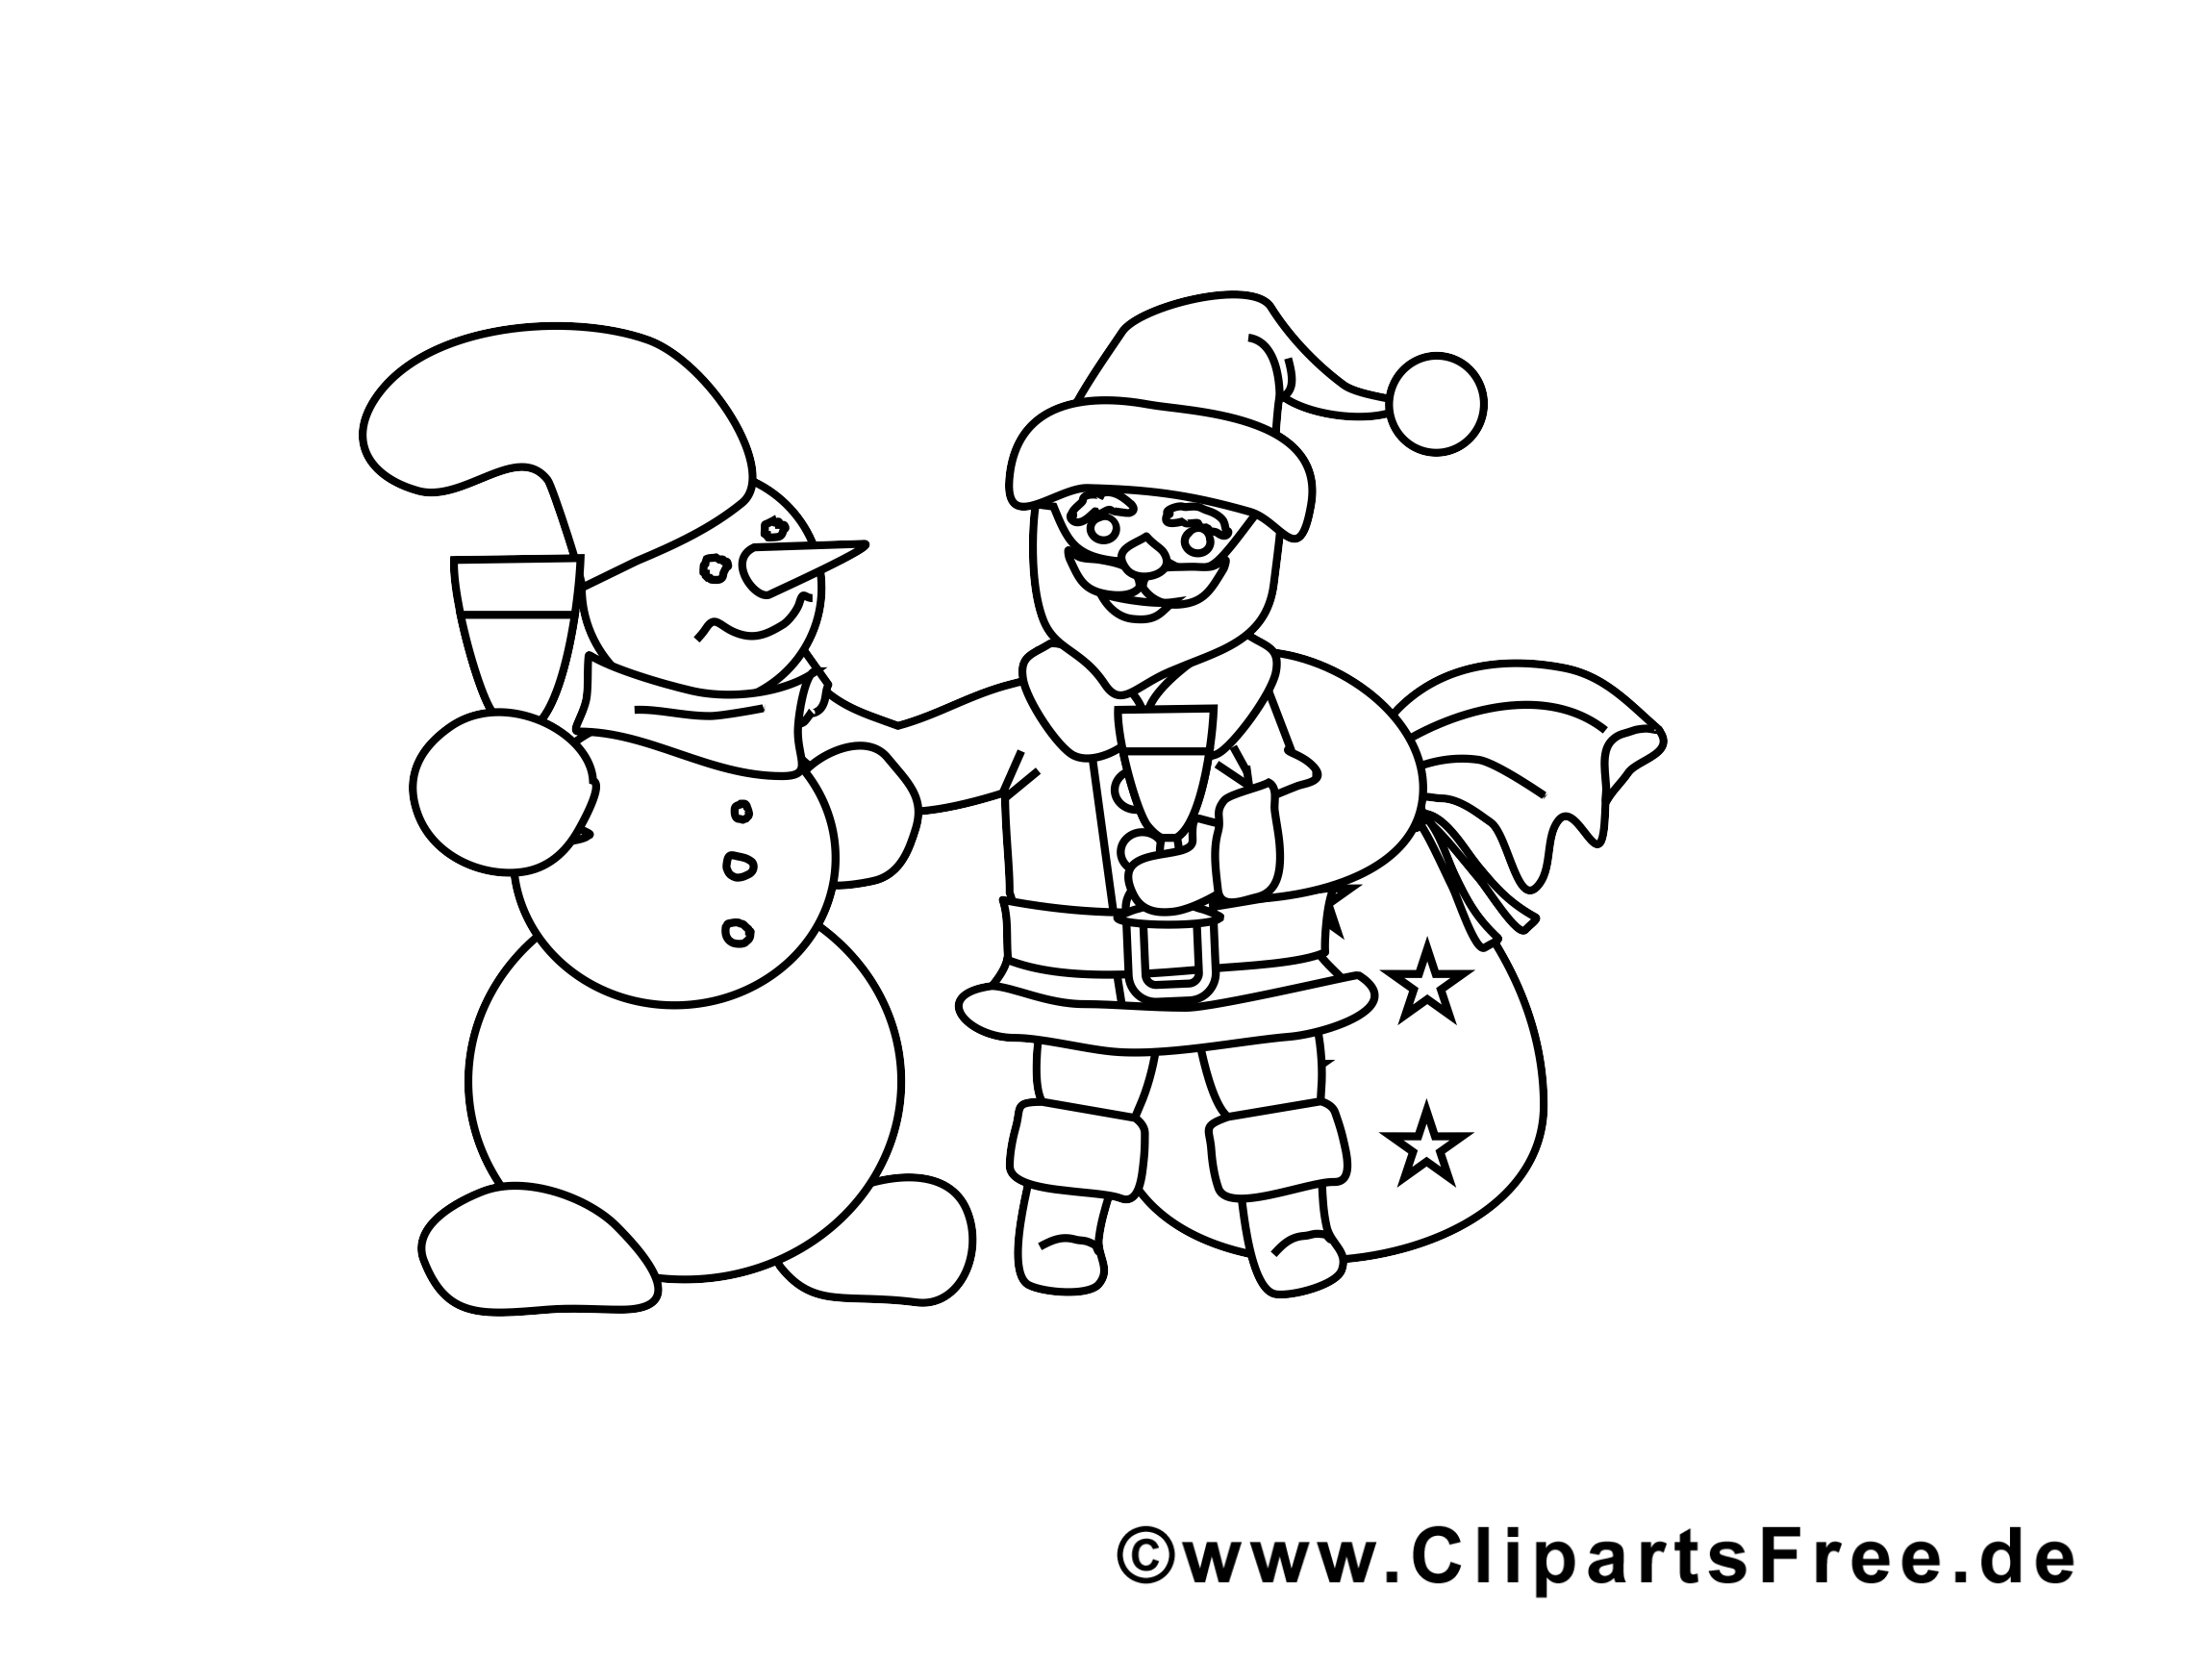 Coloriage p re noel gratuit cartes de no l dessin picture image graphic clip art - Cliparts noel gratuits ...